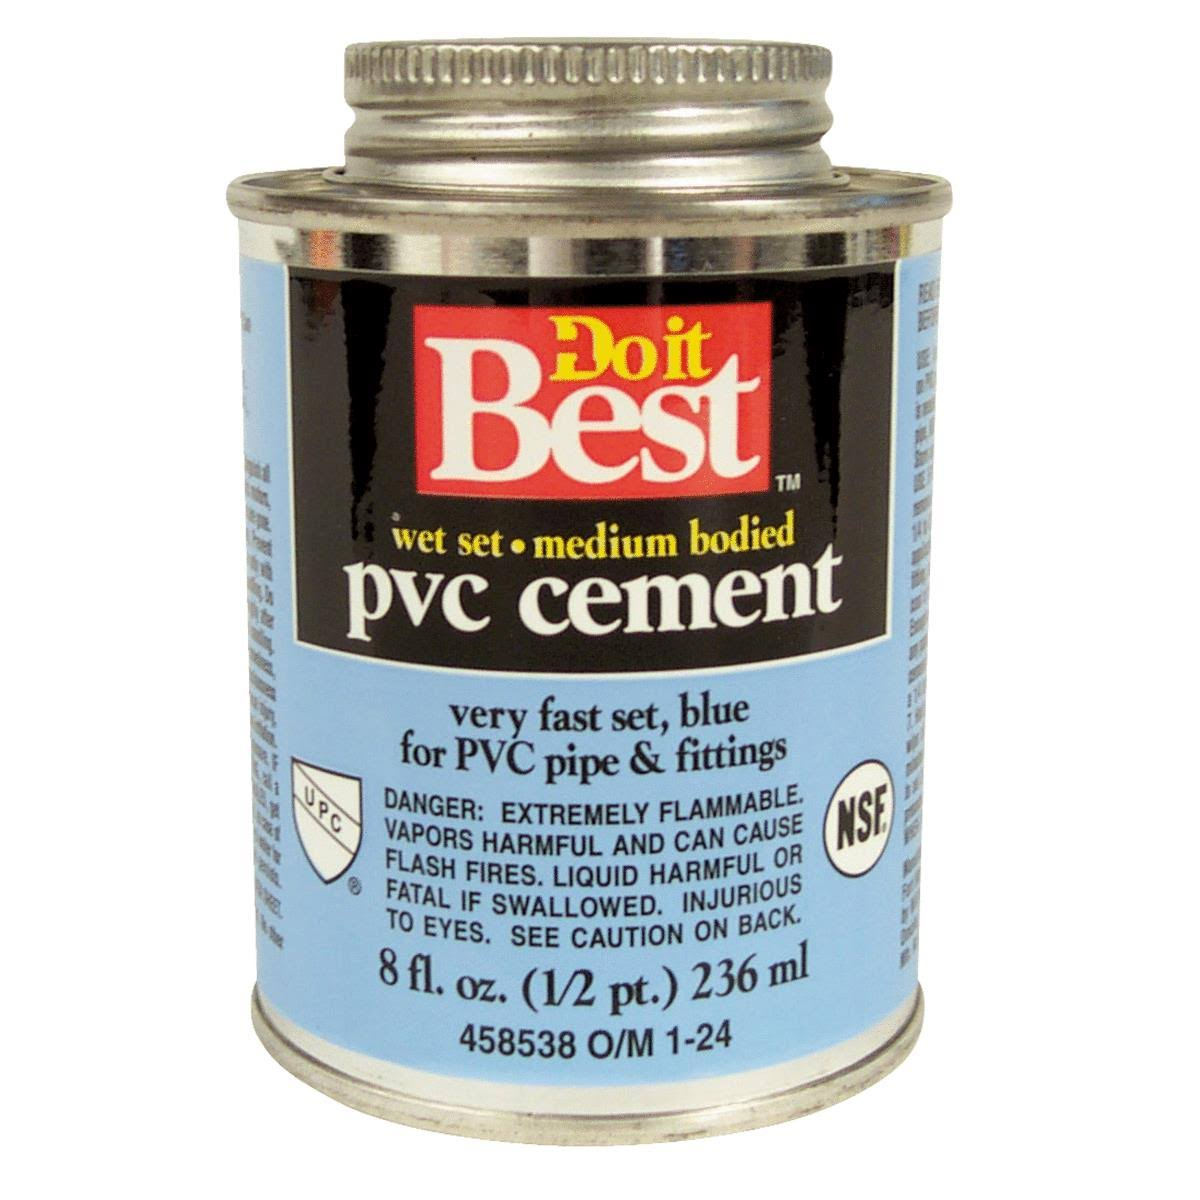 Do It Best Pvc Cement - 236ml